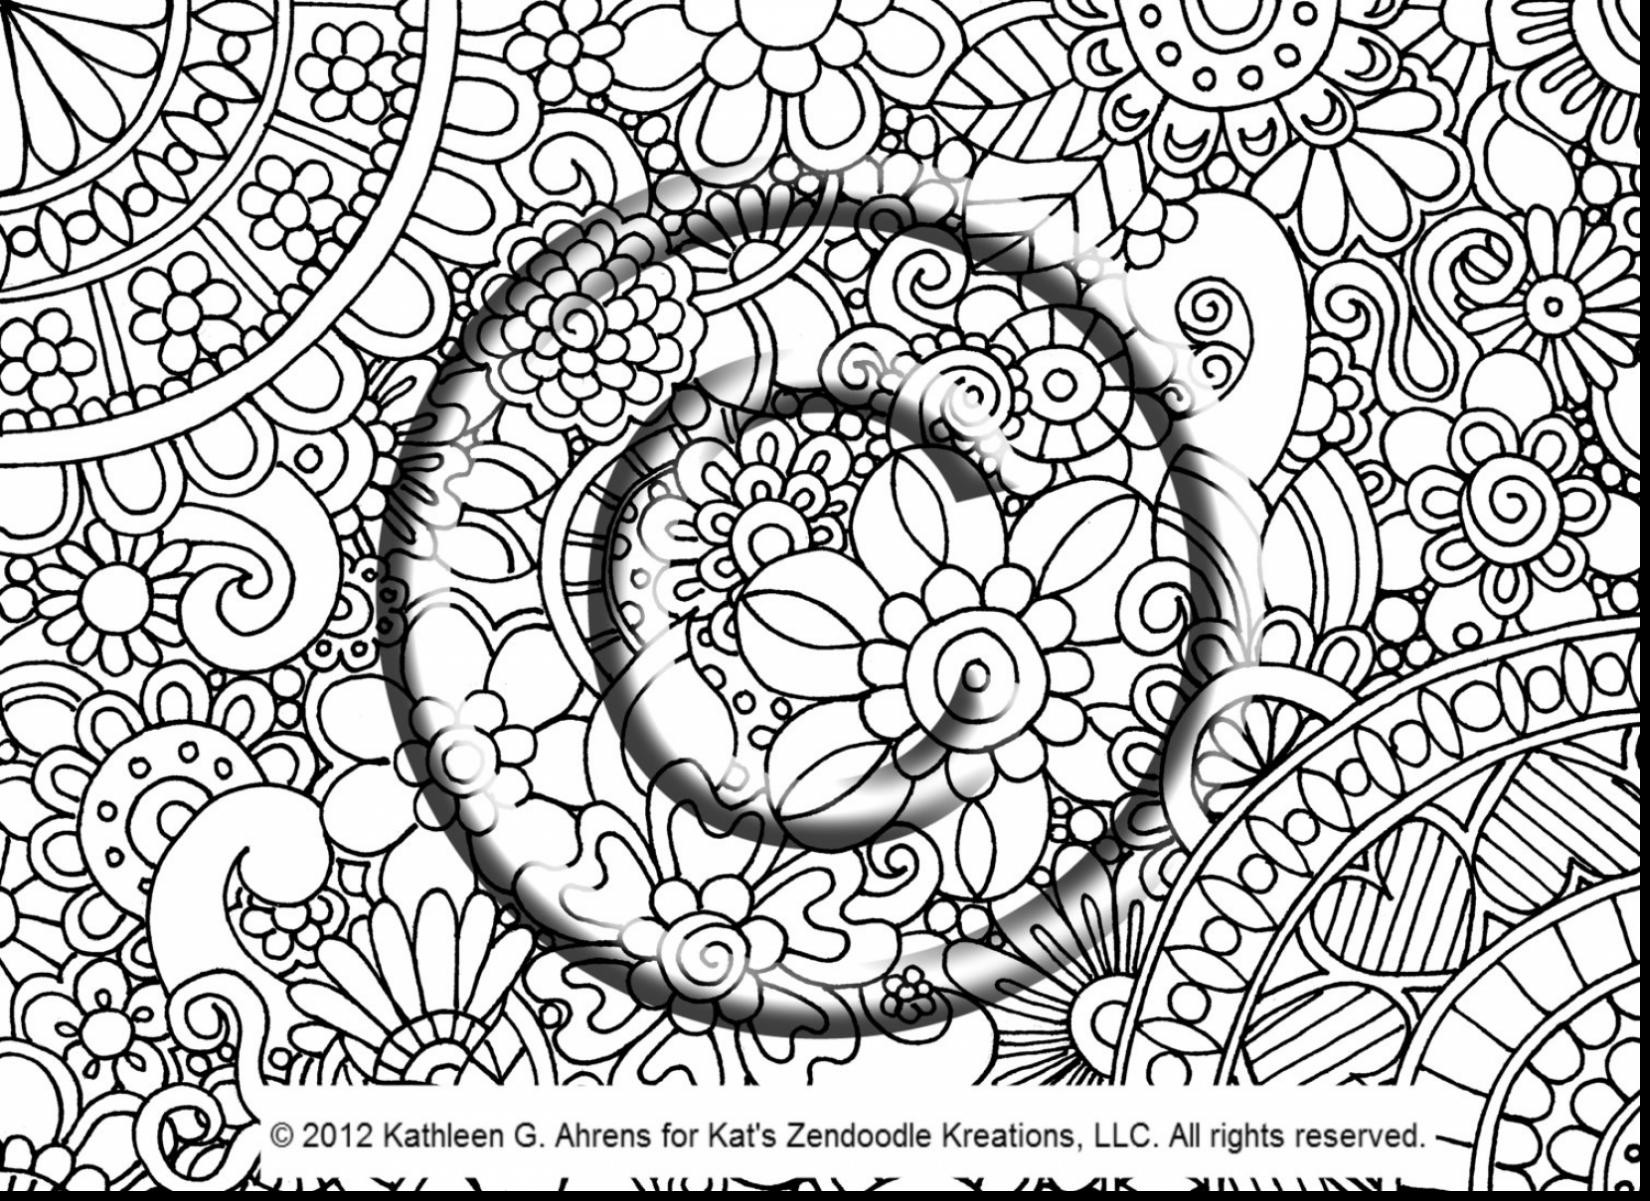 Trippy Drawing at GetDrawings.com | Free for personal use Trippy ...